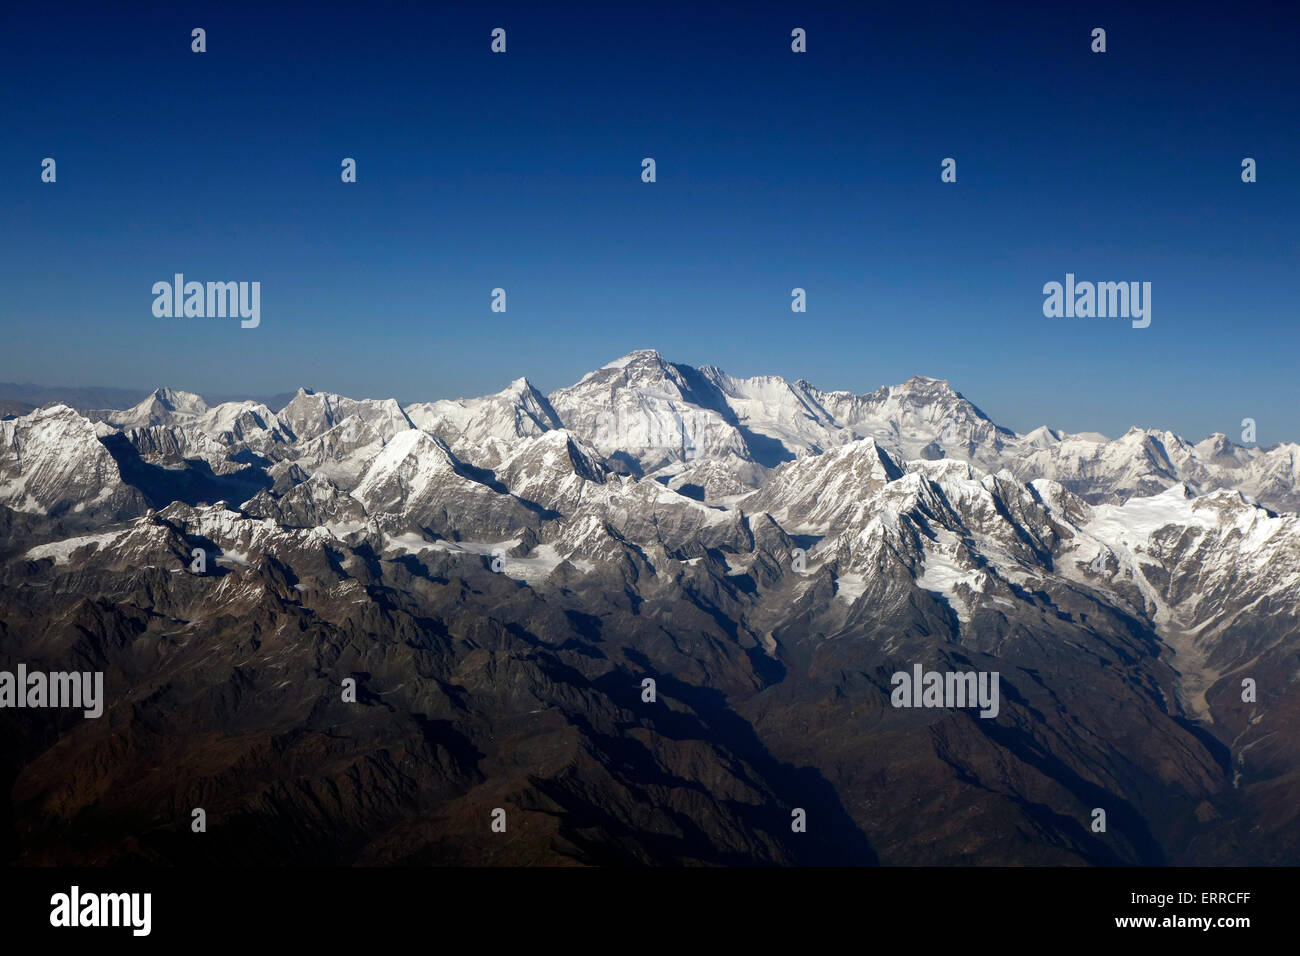 Aerial view of Mount Everest and the Himalaya mountains as seen from an airplane from Nepal to Bhutan - Stock Image